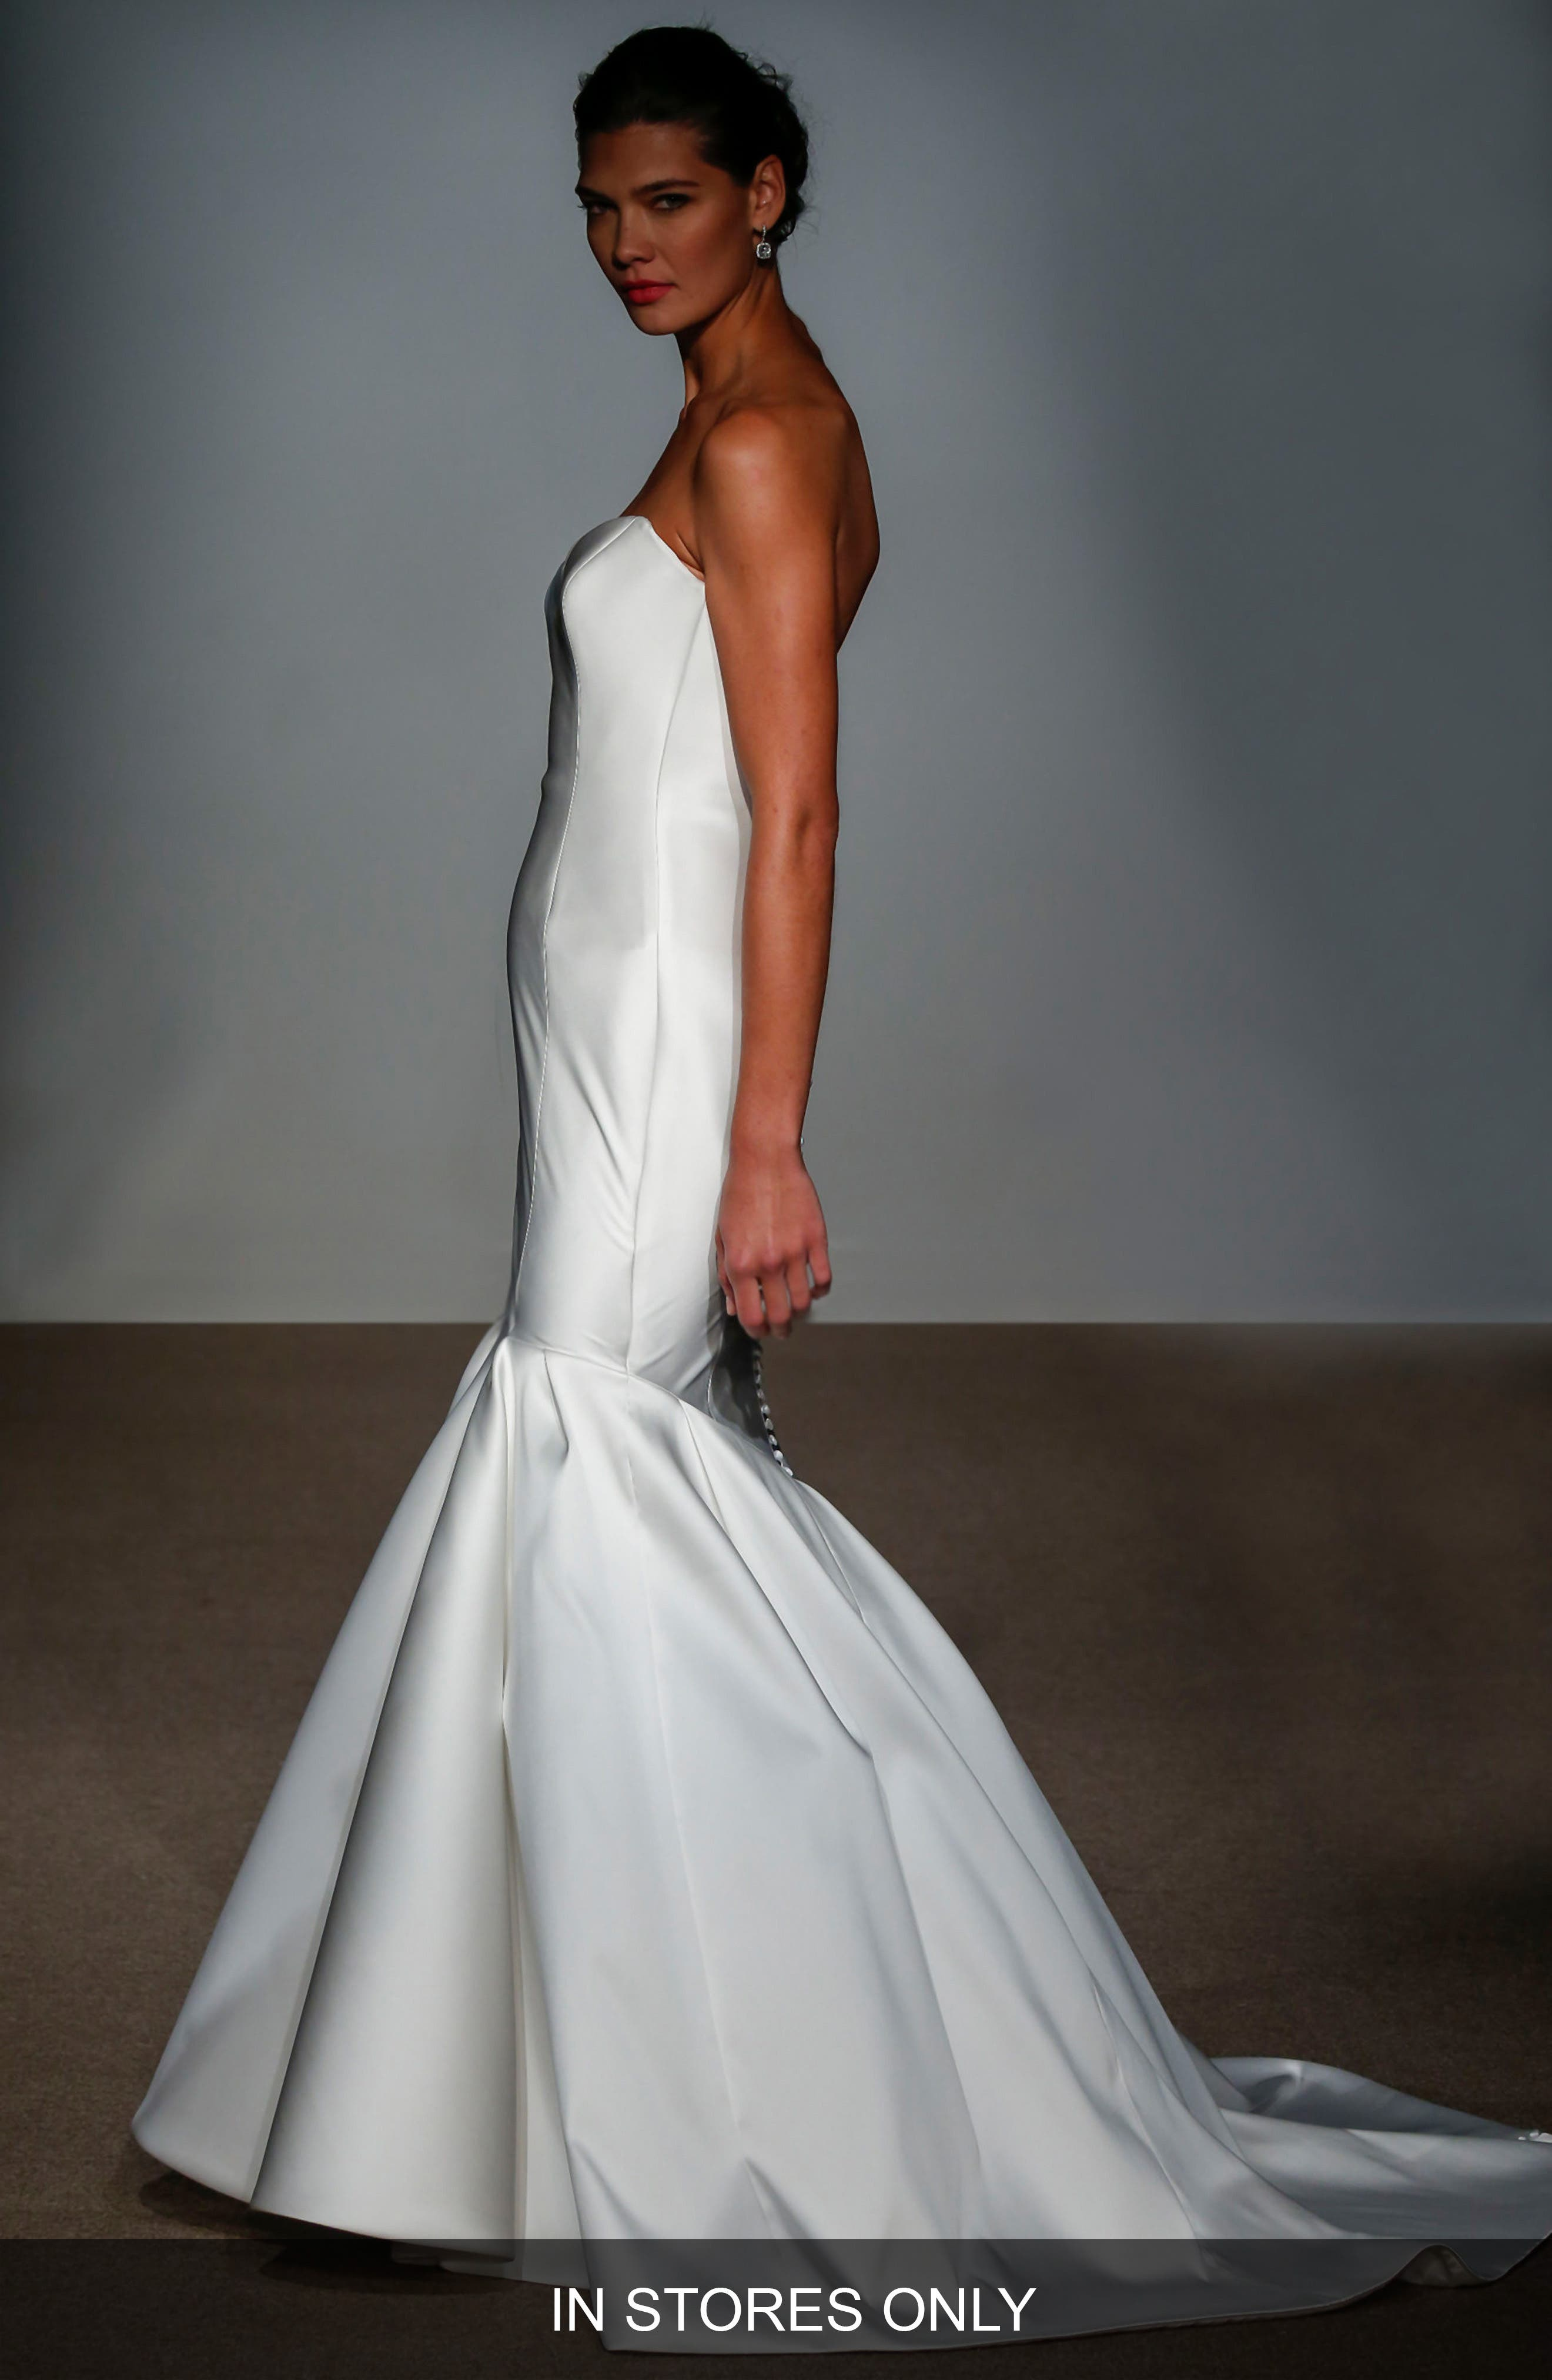 Alternate Image 1 Selected - Anna Maier Couture Nara Strapless Silk Satin Mermaid Gown